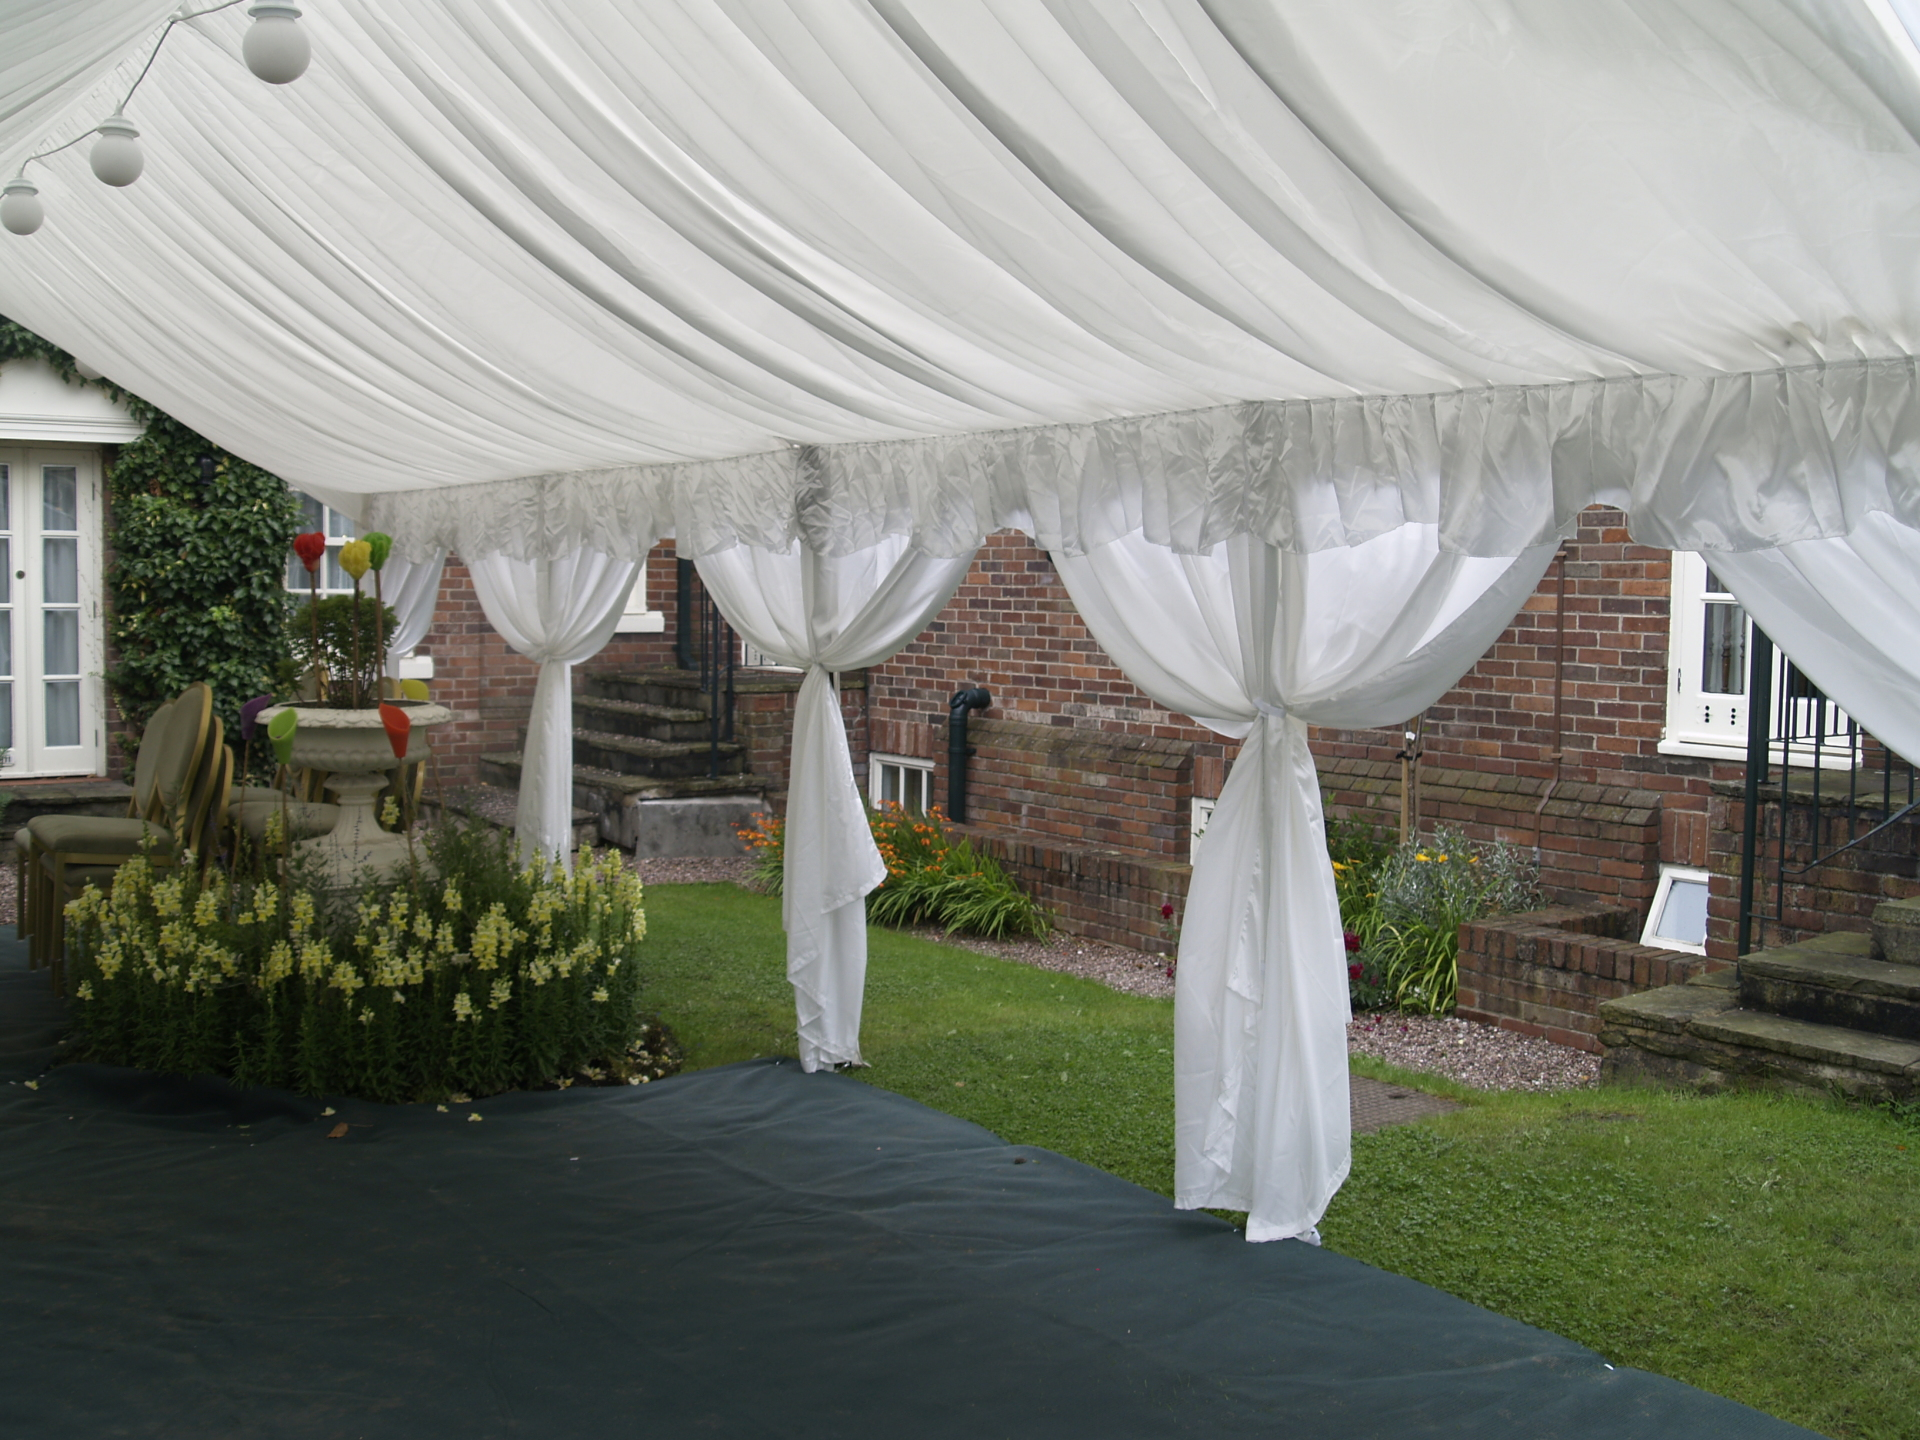 4m x 8m marquee side view of lining